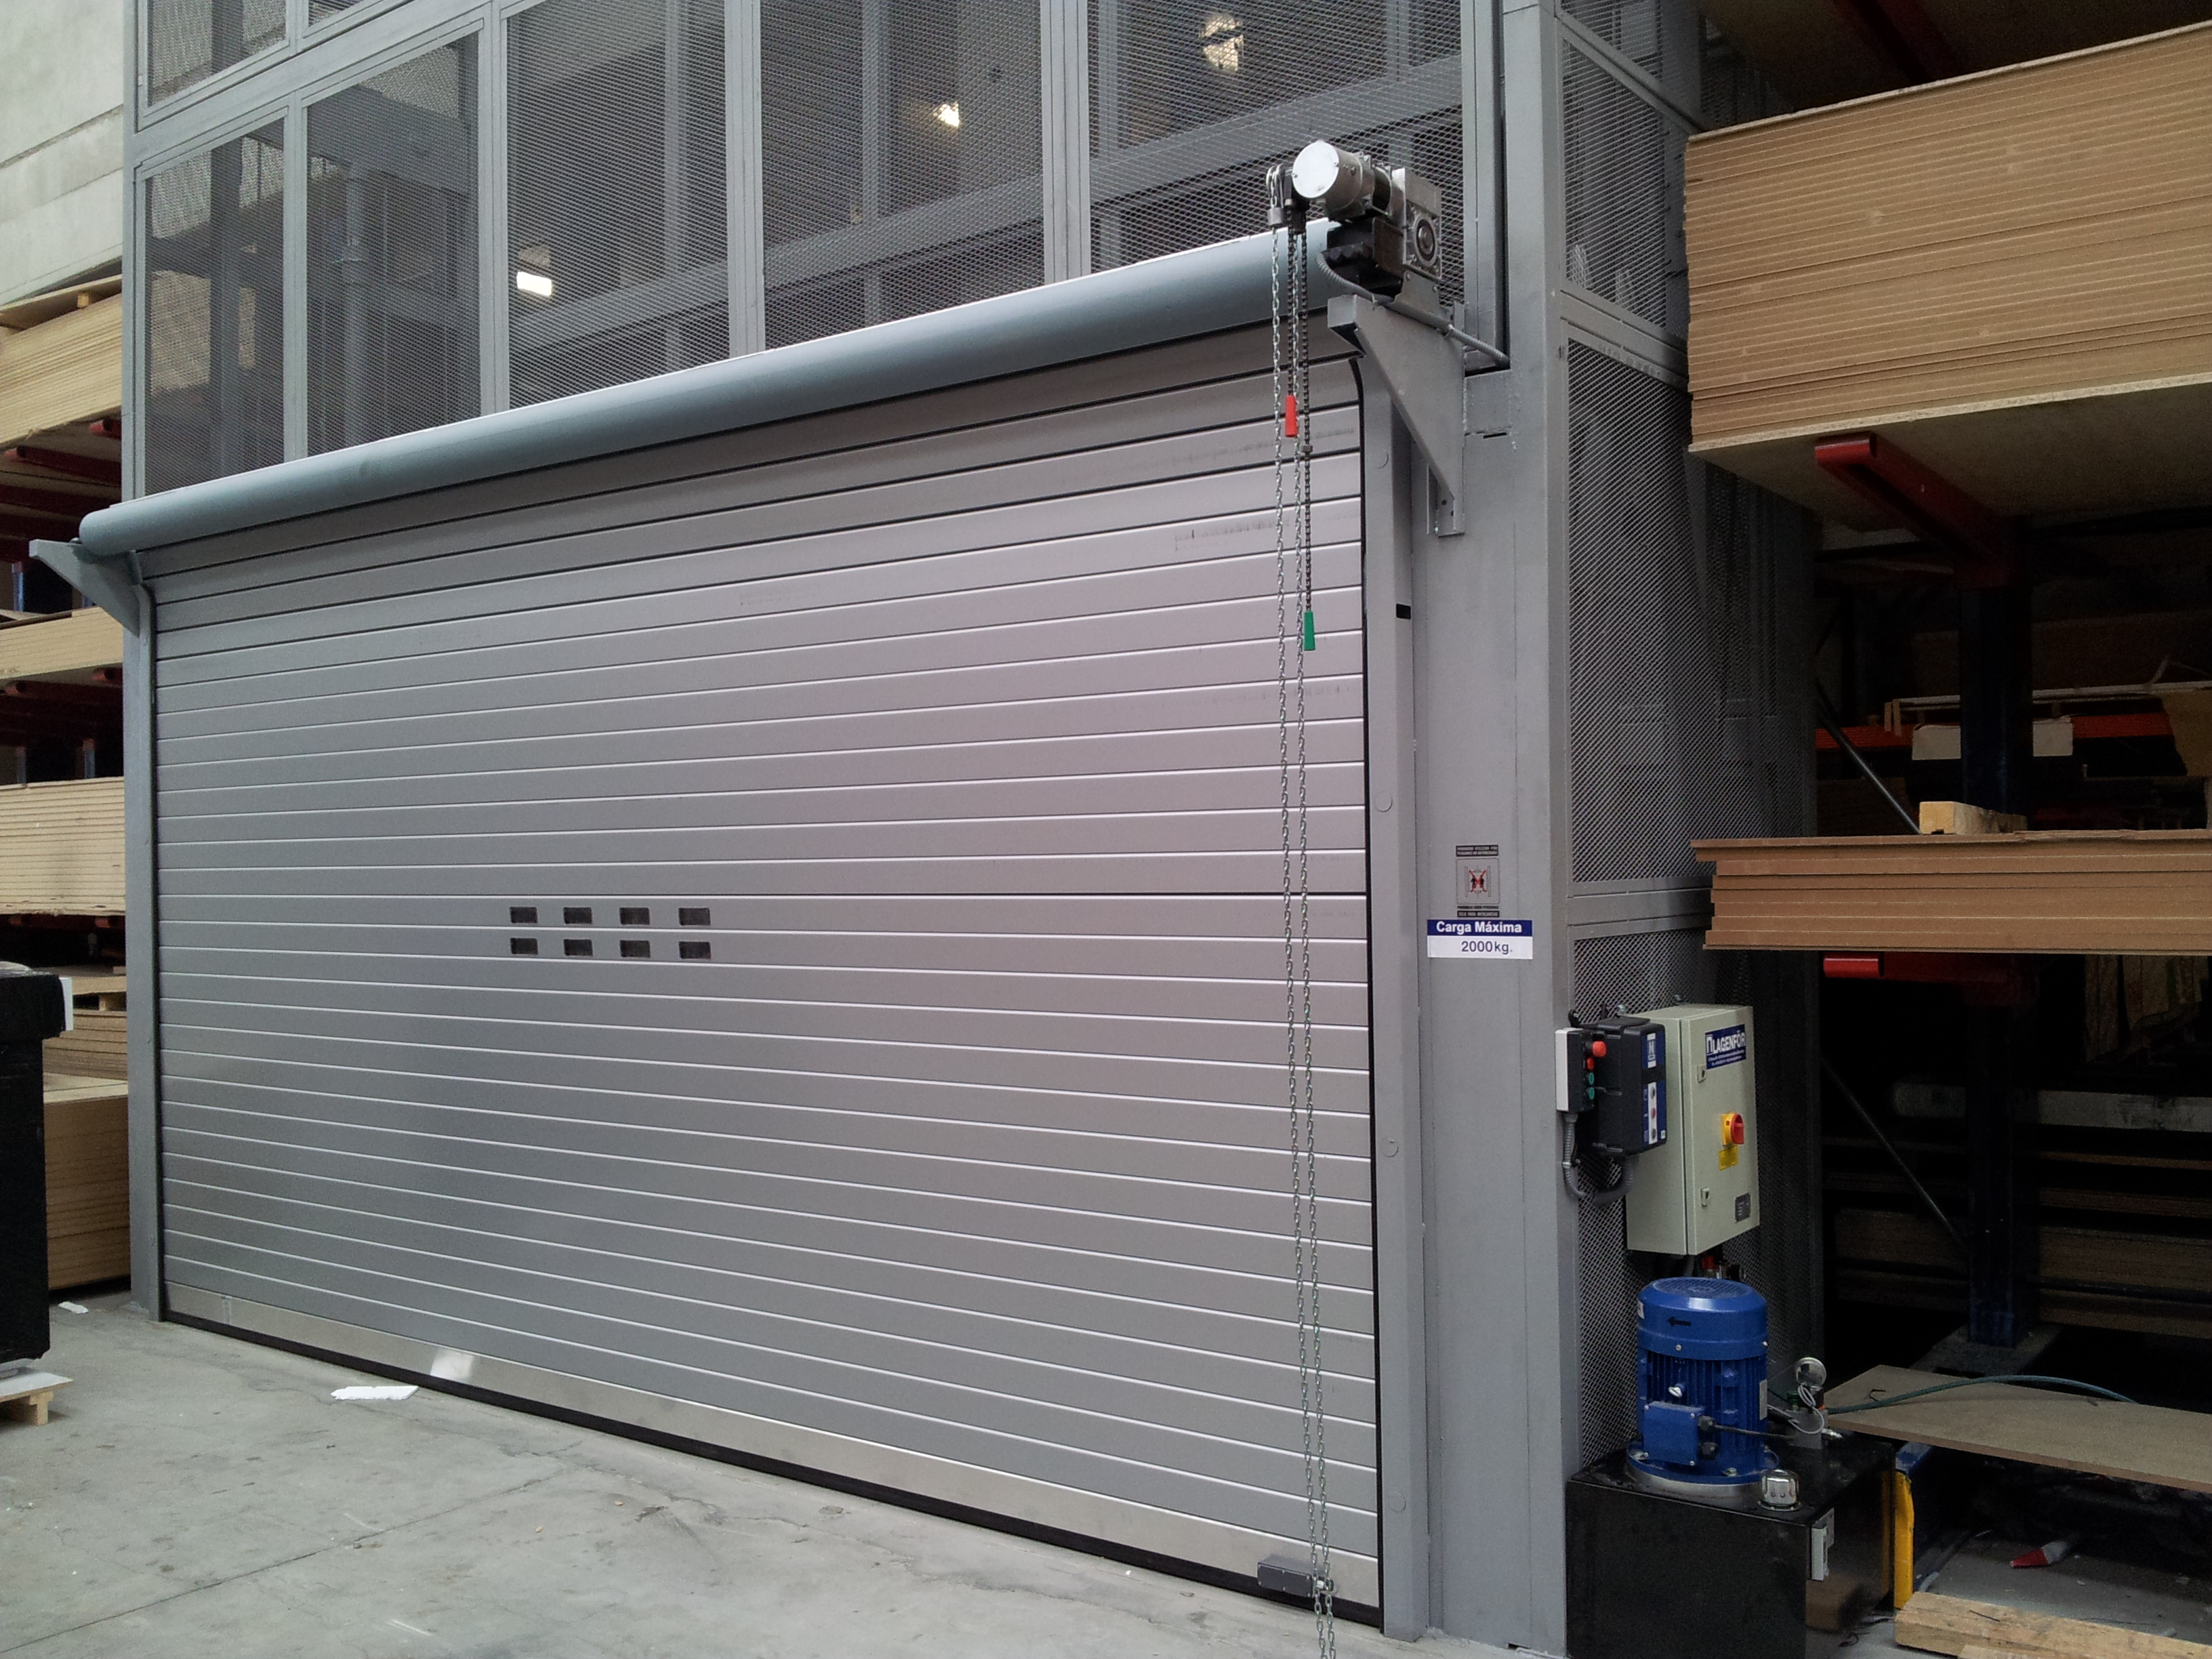 Plt with gray roll-up doors